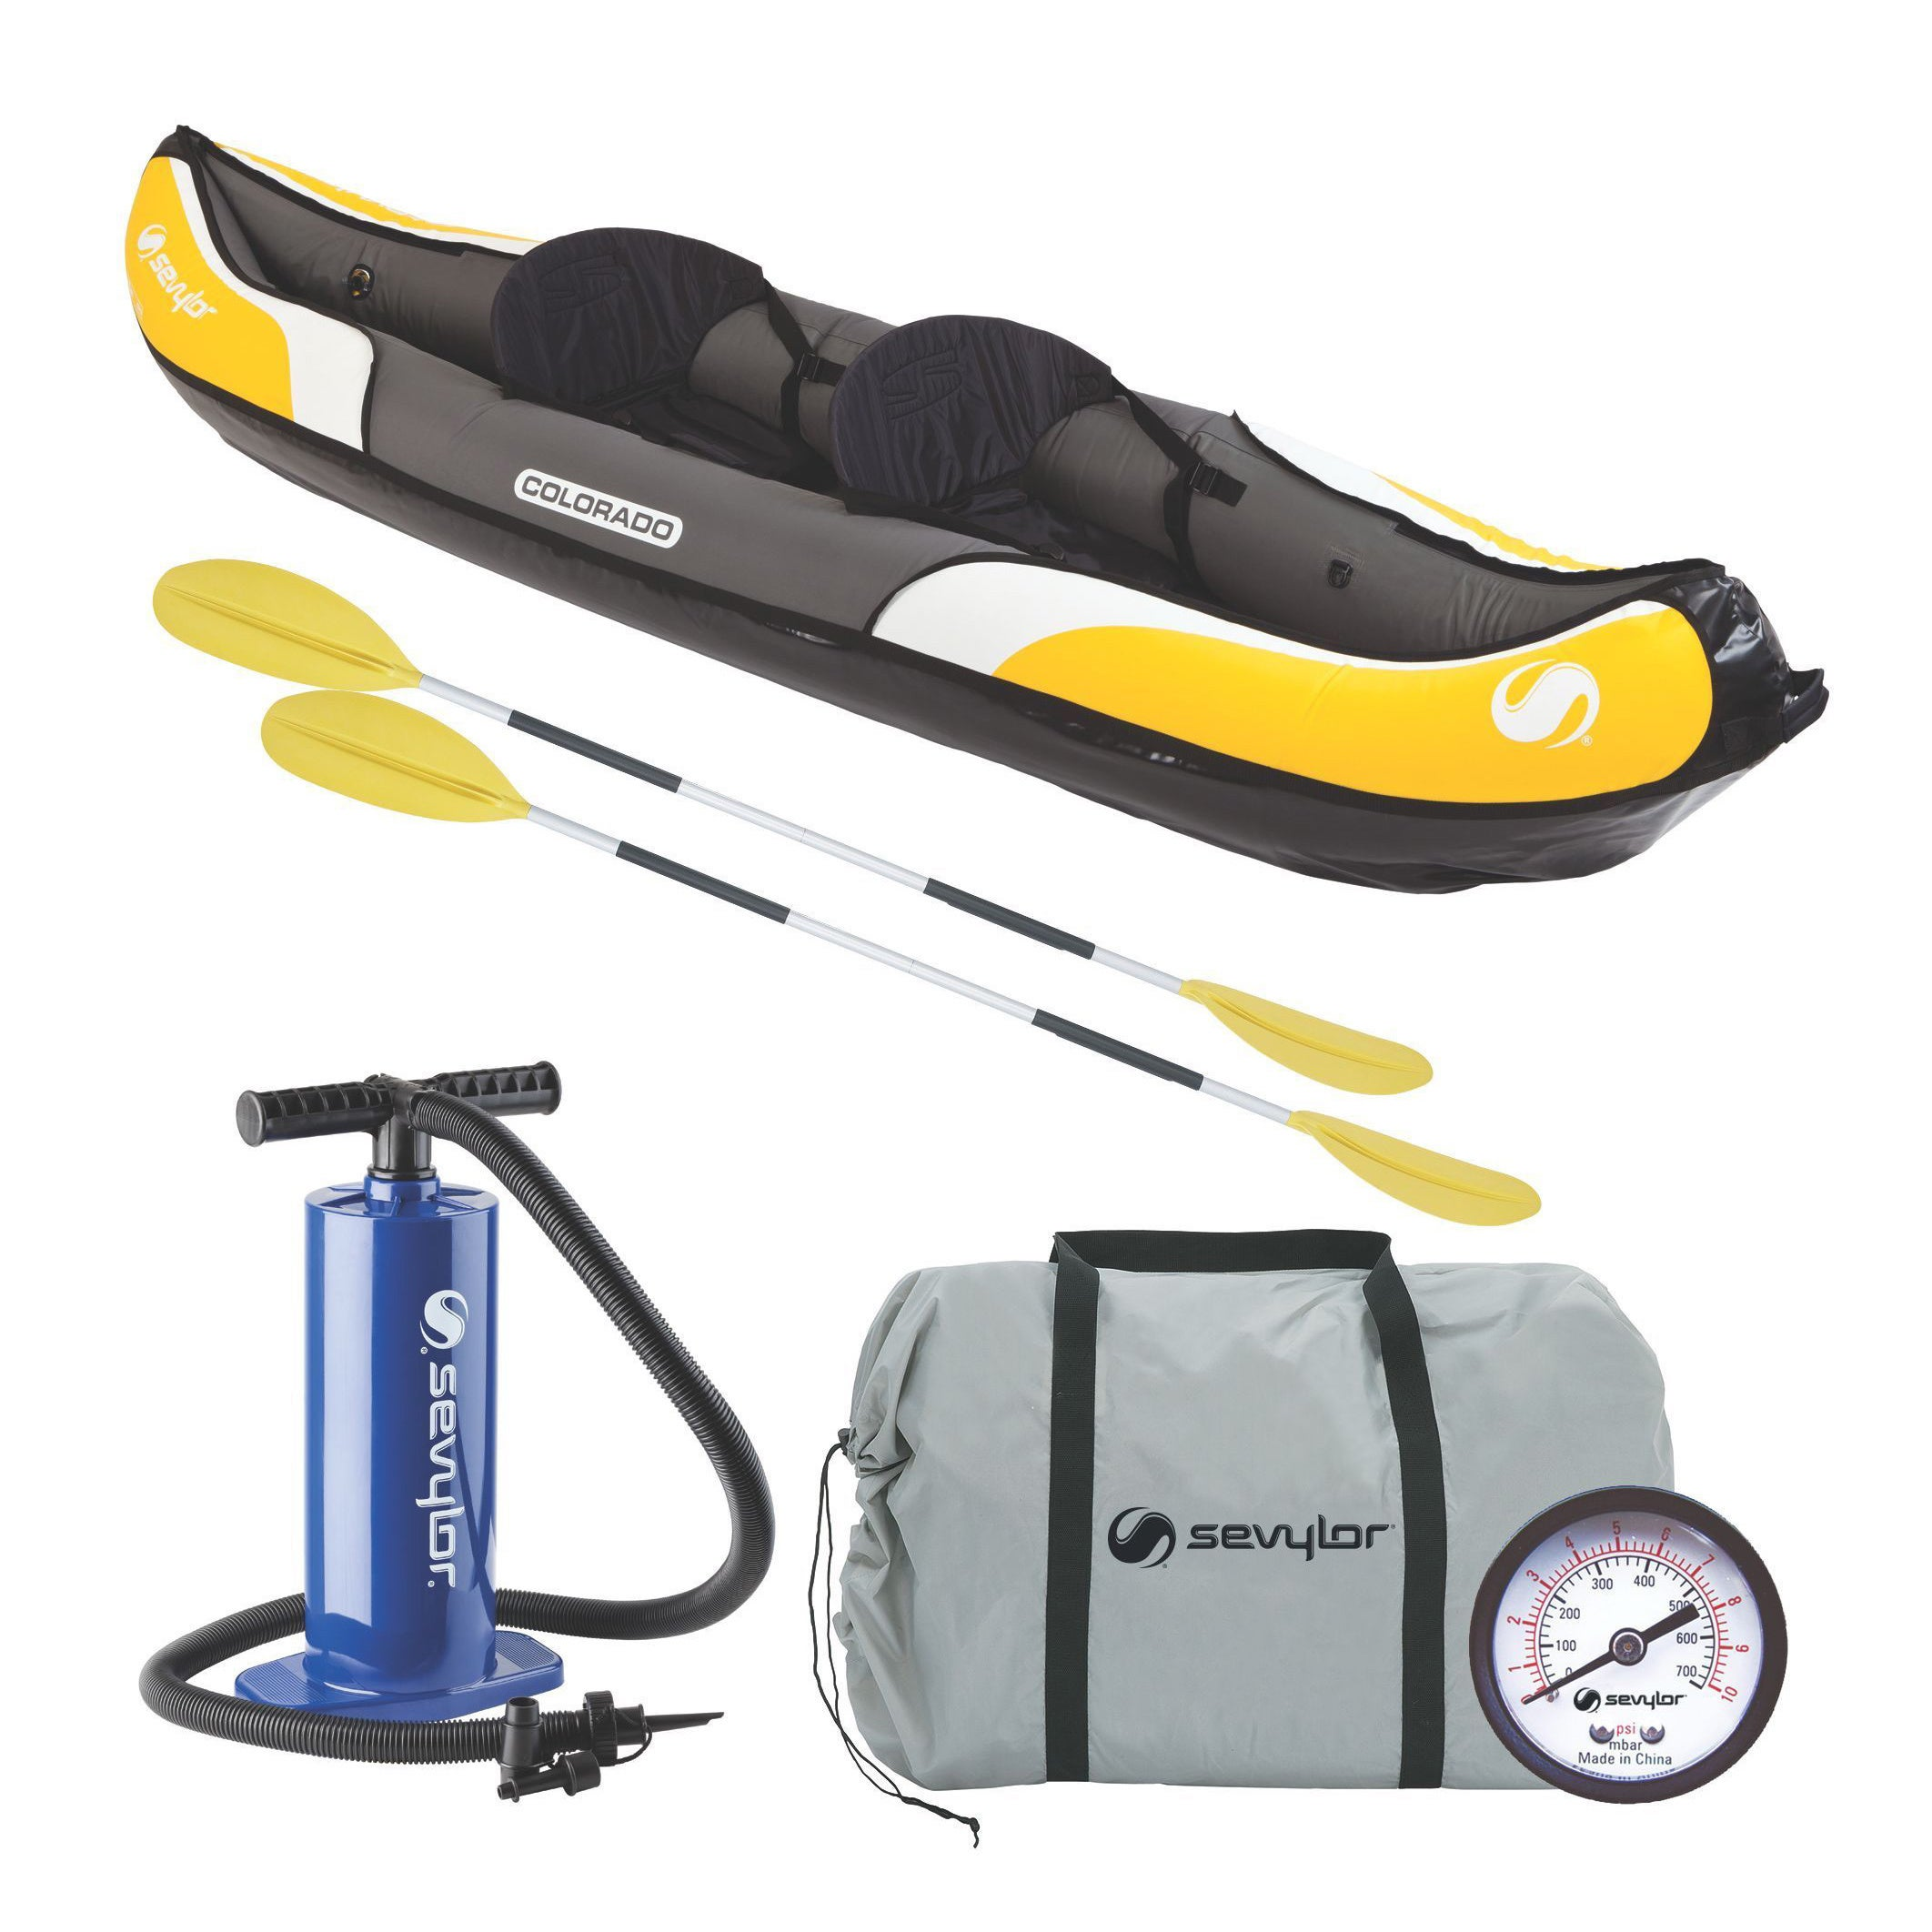 Coleman Sevylor Colorado Multicolor PVC 2-person Kayak Co...